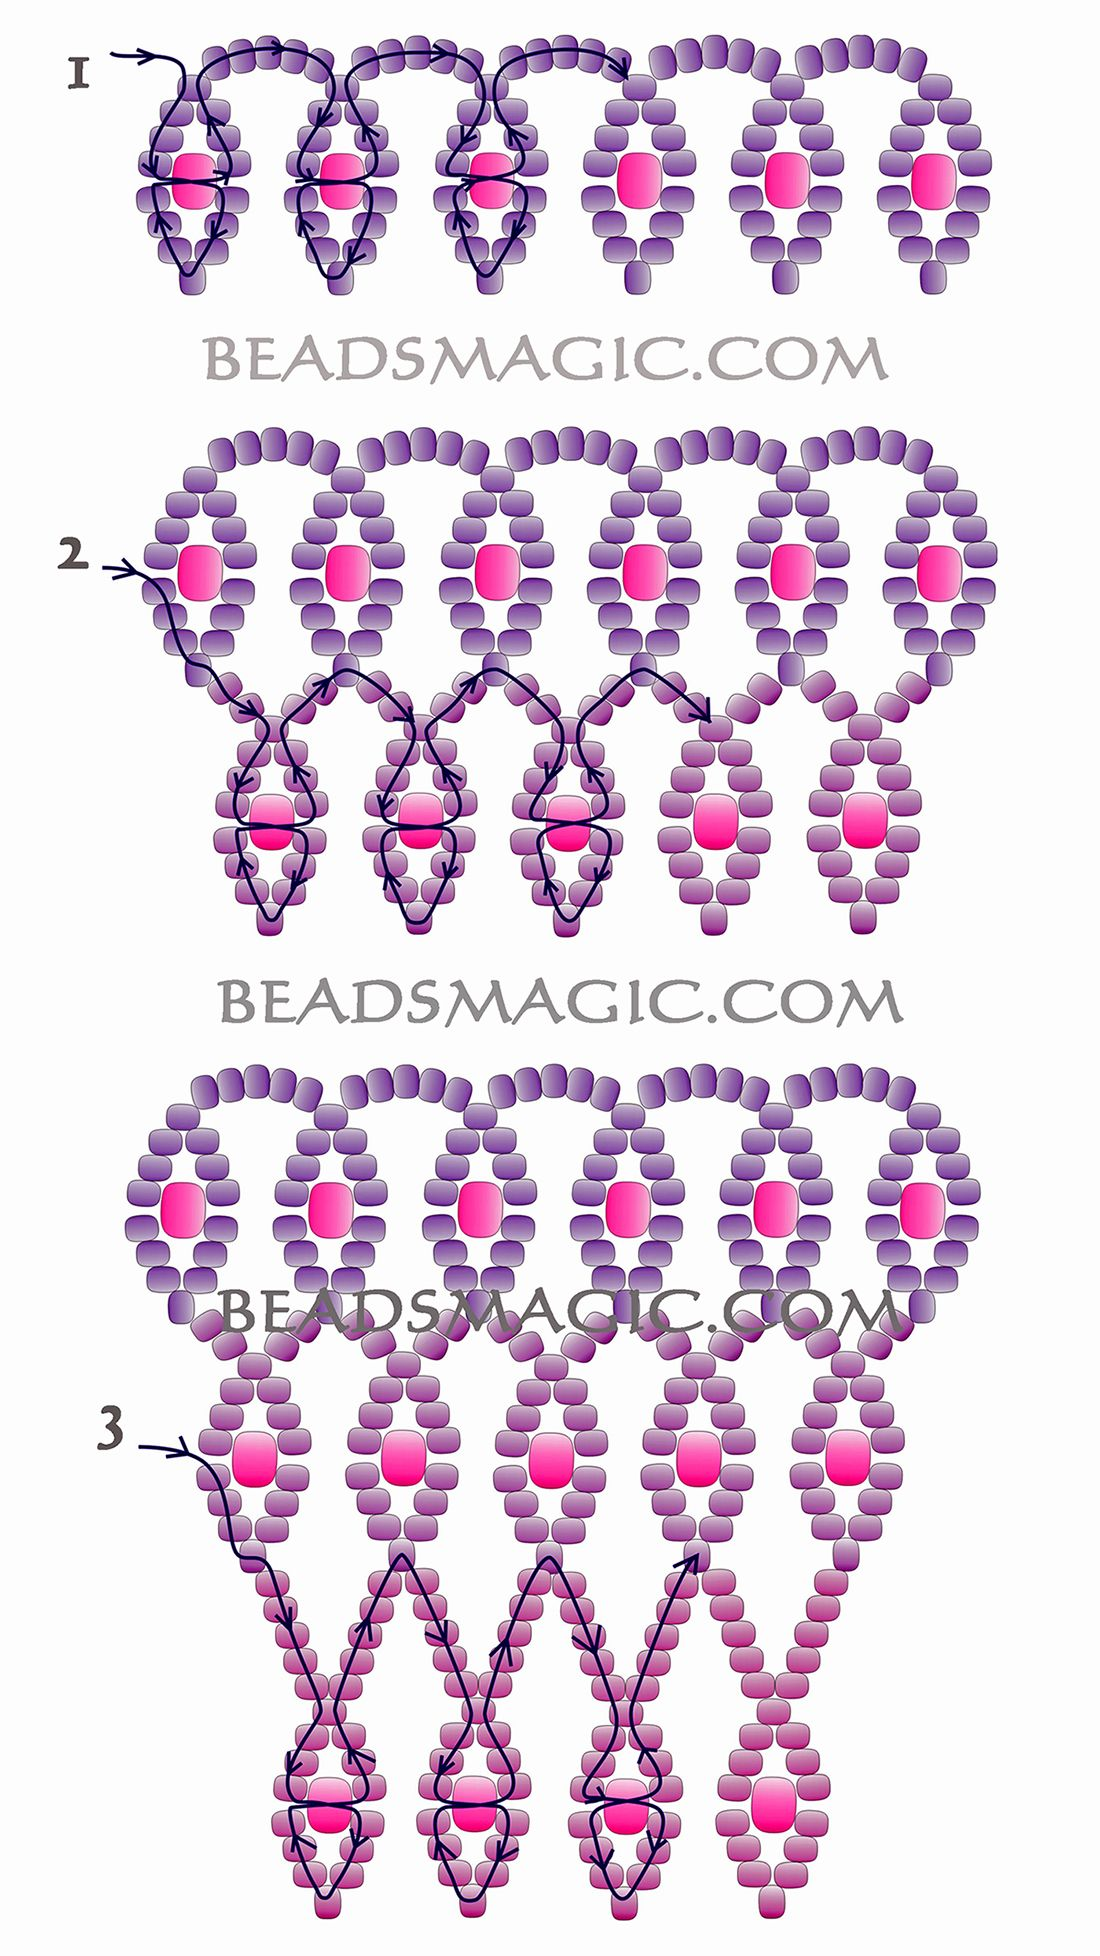 free-beaded-necklace-tutorial-pattern-2.jpg 1 100×1 956 pikseli